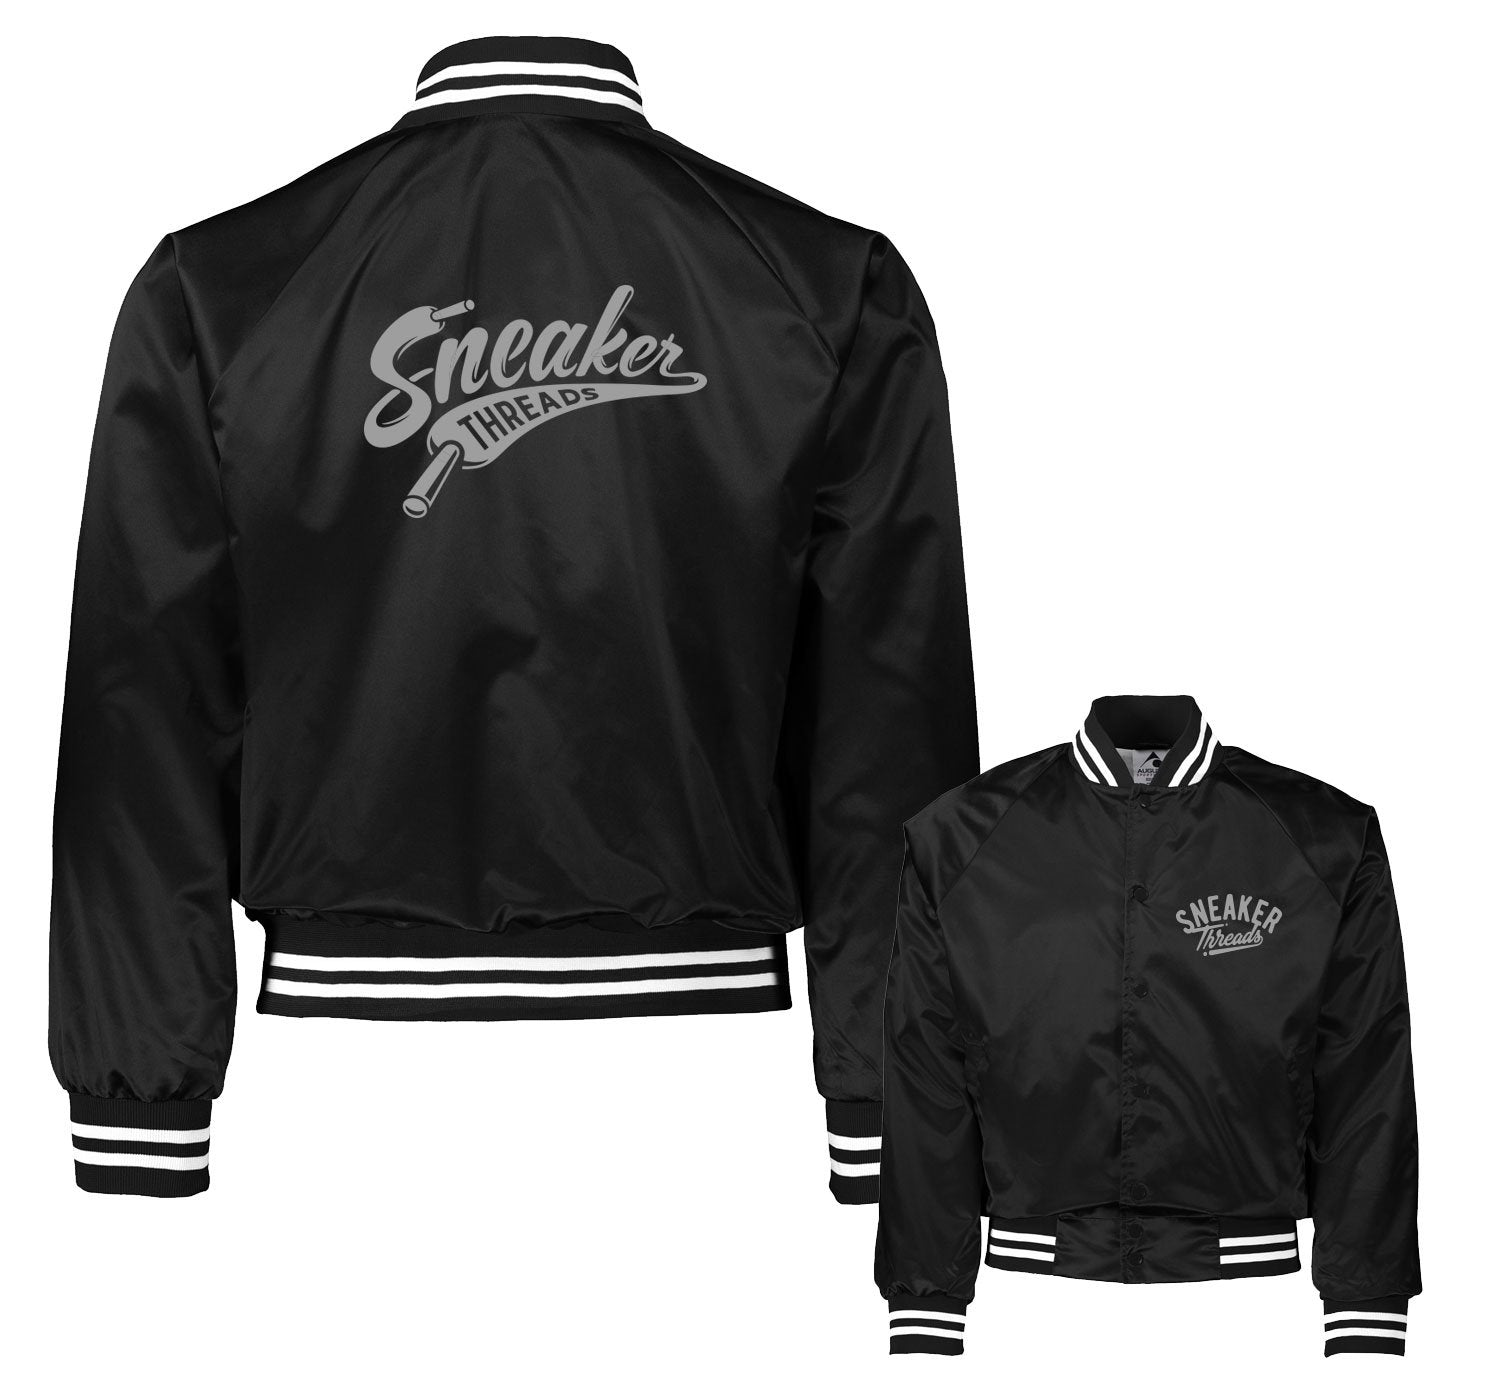 Satin Bomber jacket match Jordan 4 black cat shoes.